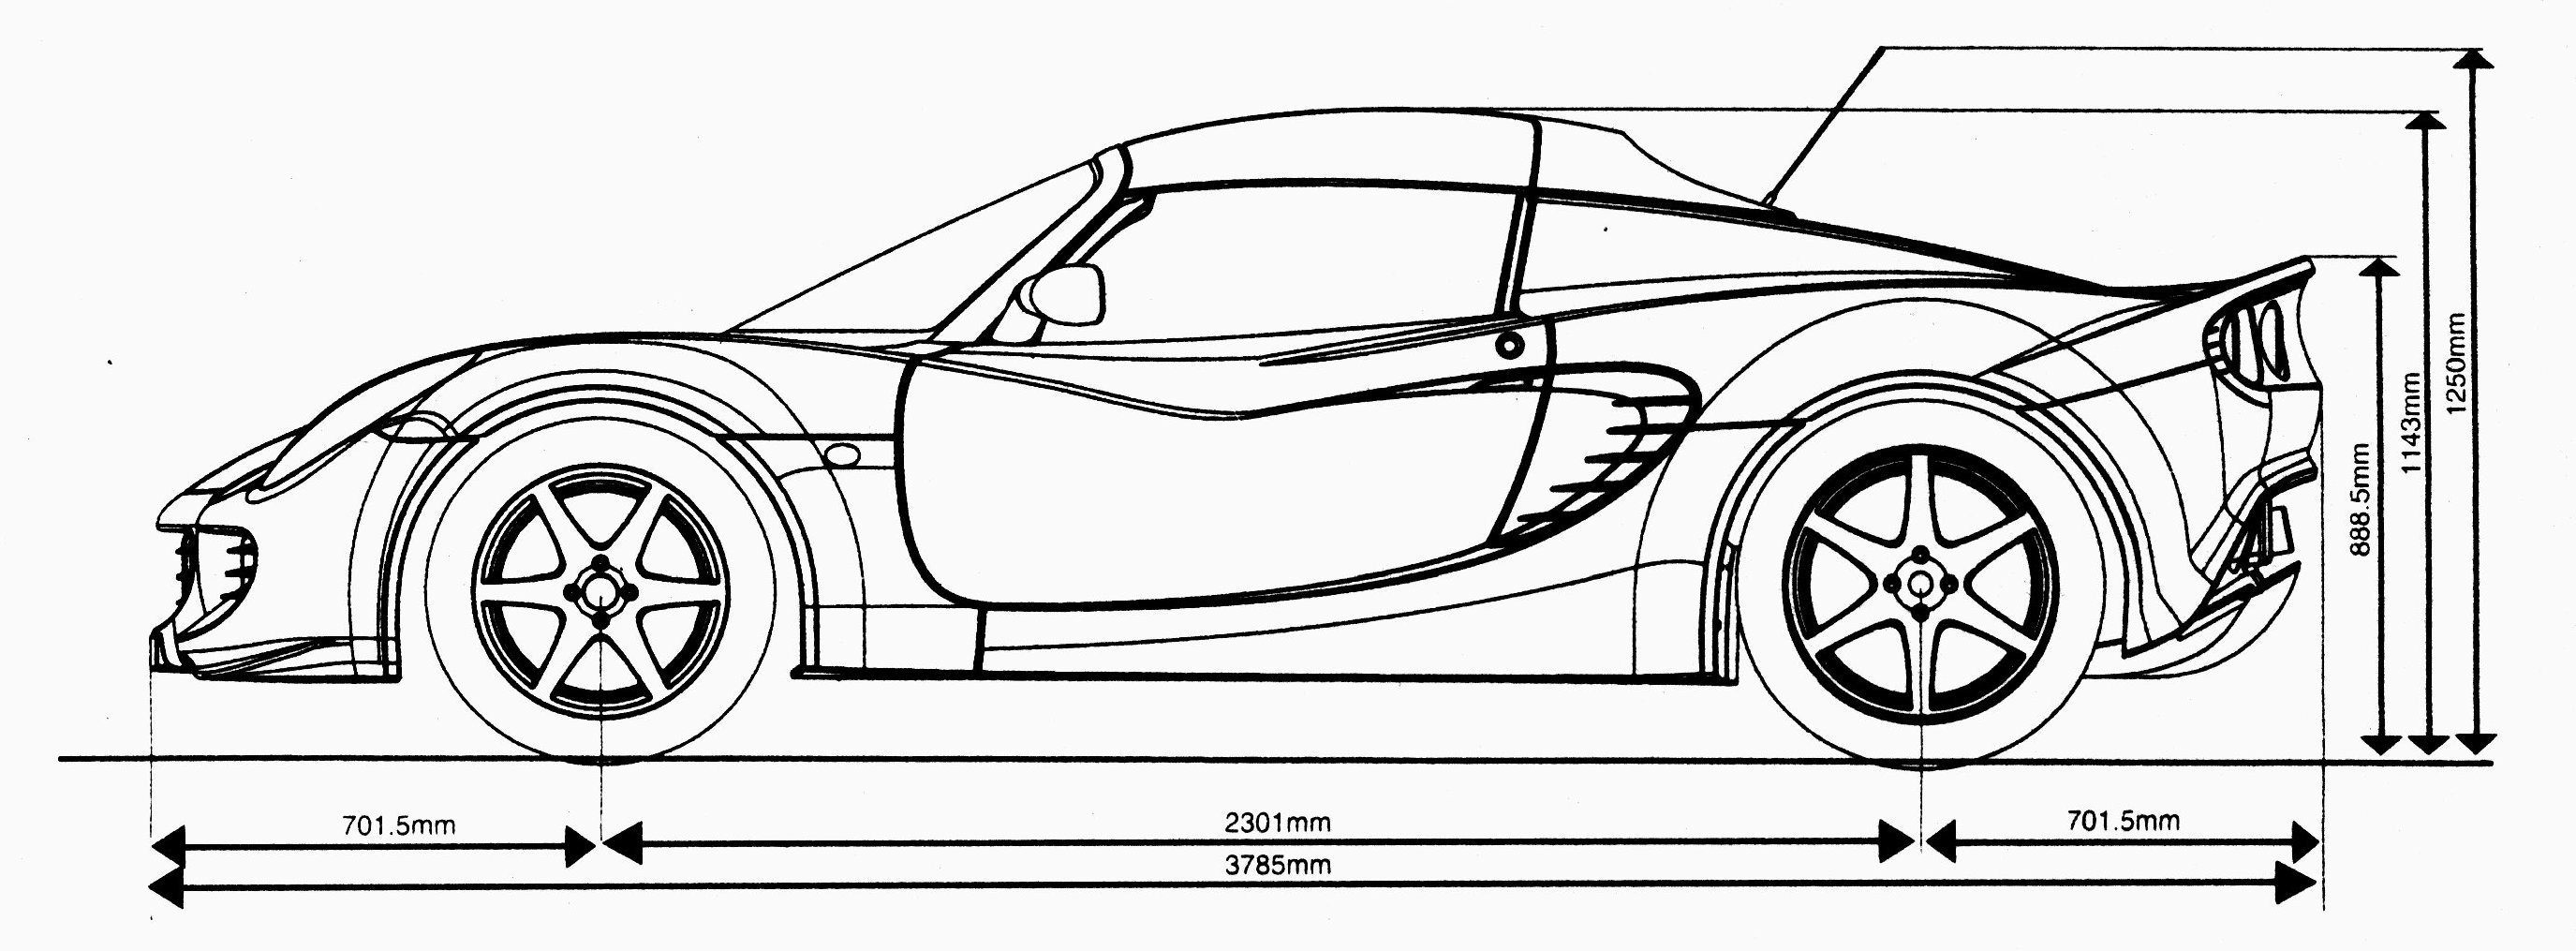 It's just an image of Mesmerizing Side View Of Car Drawing